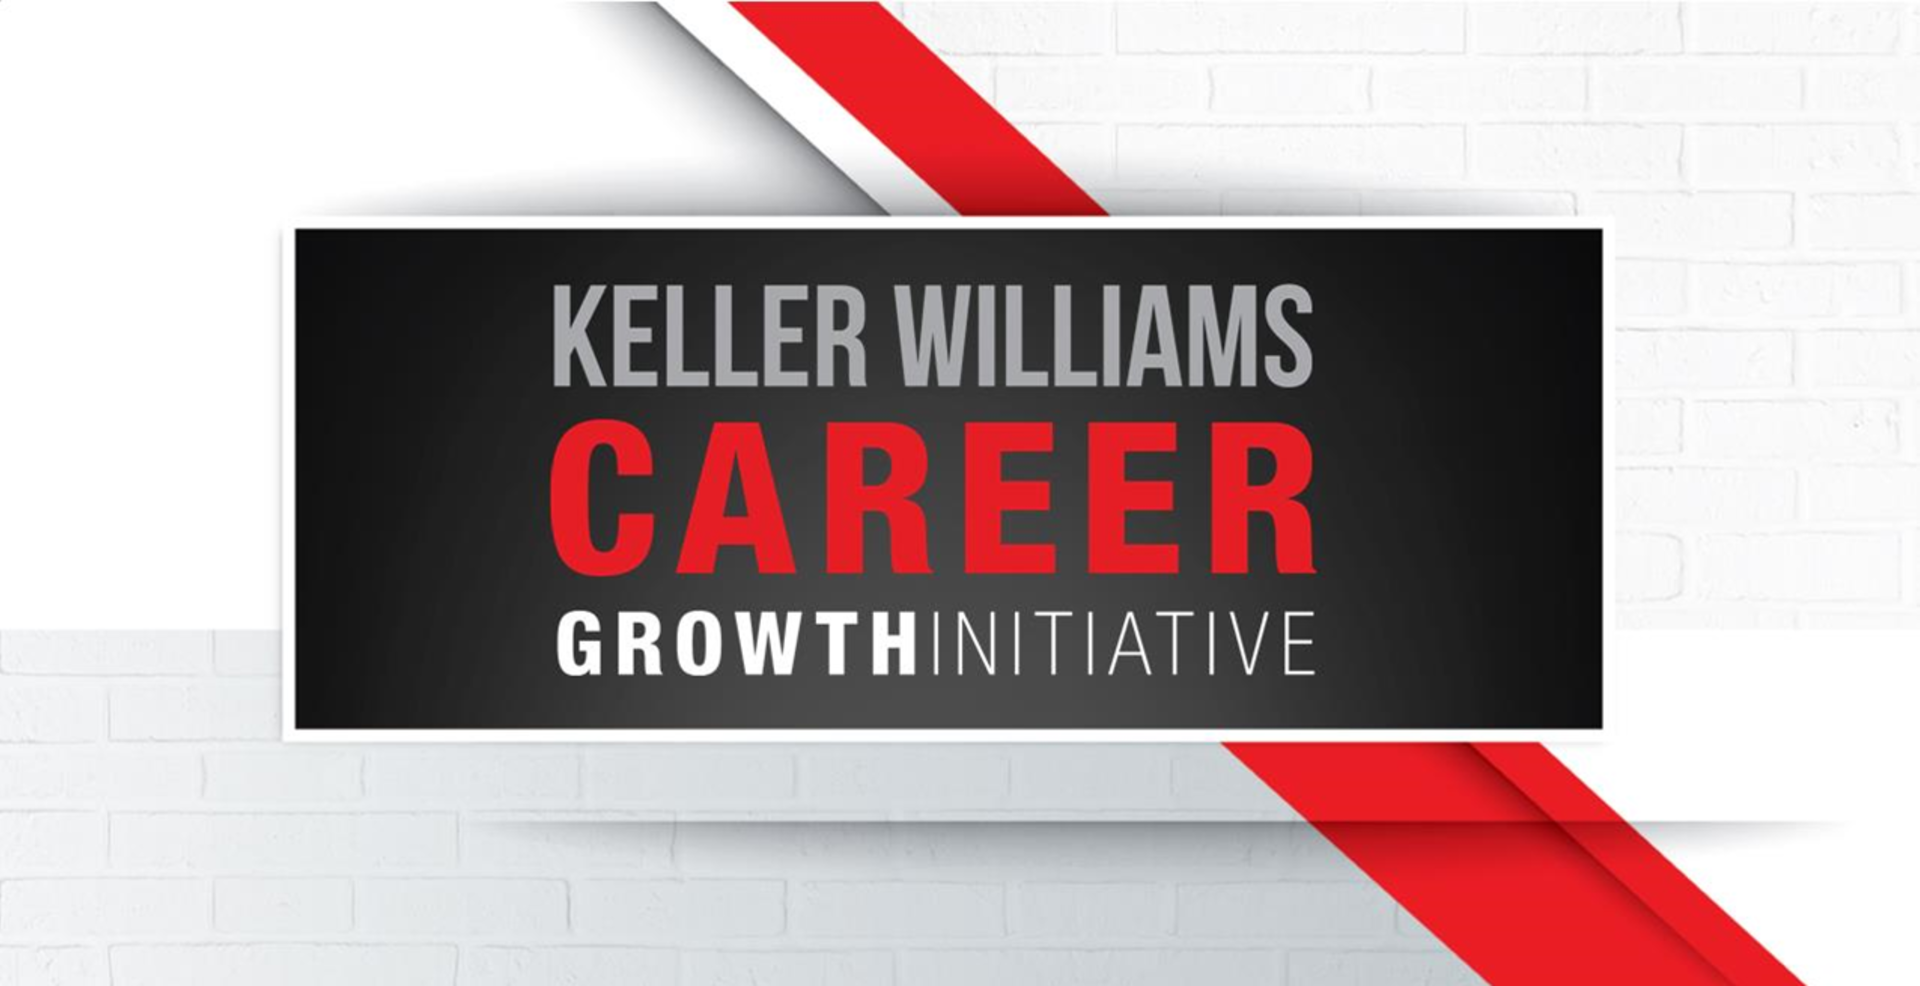 Career Growth Initiative